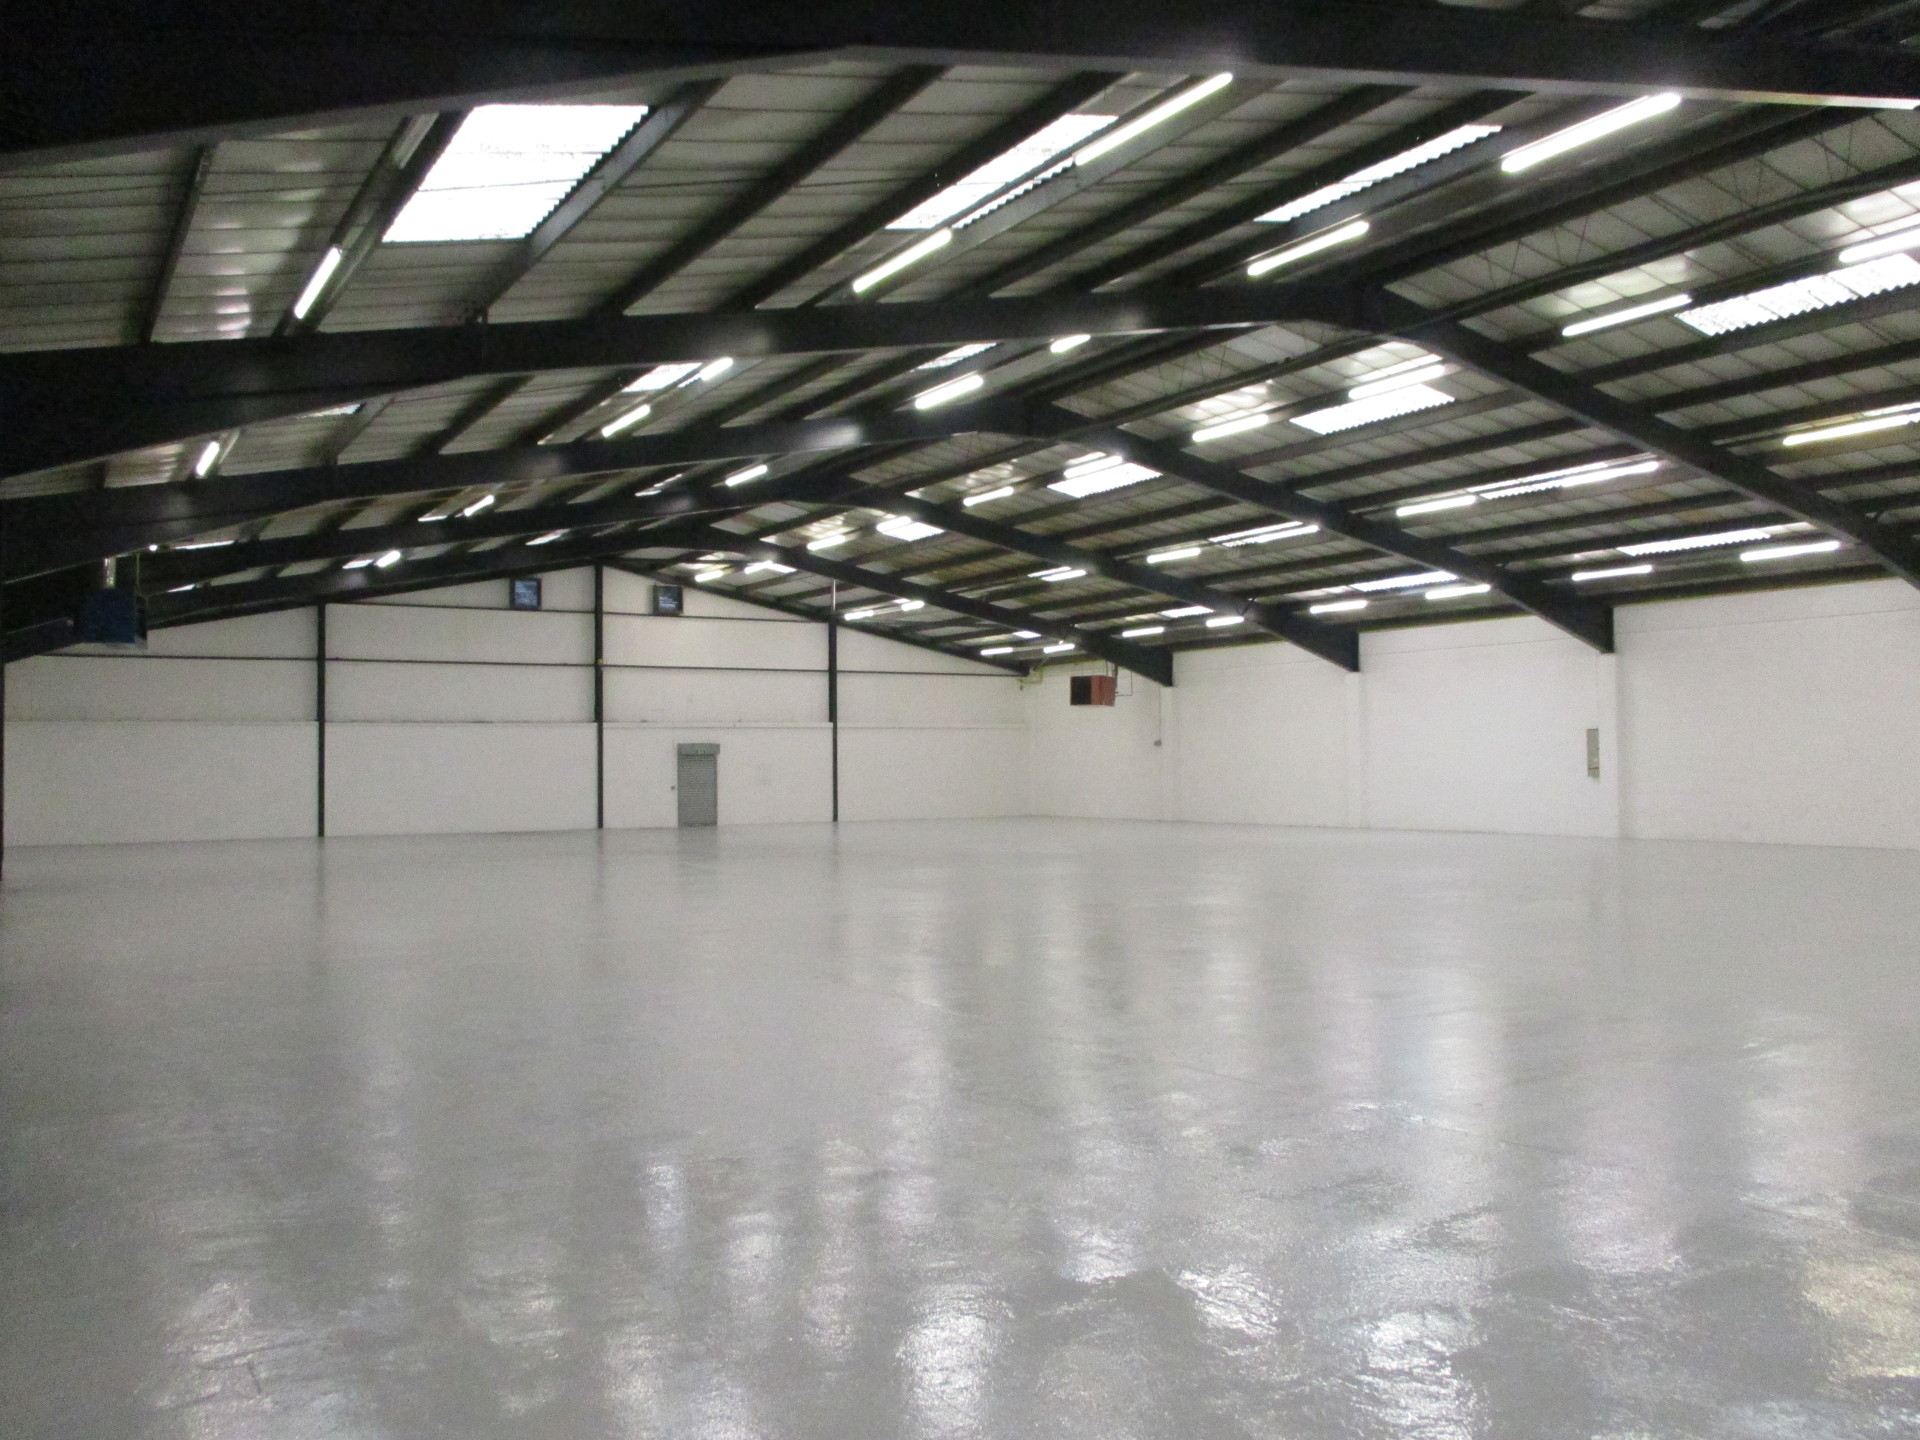 Industrial painting warehouse finished job